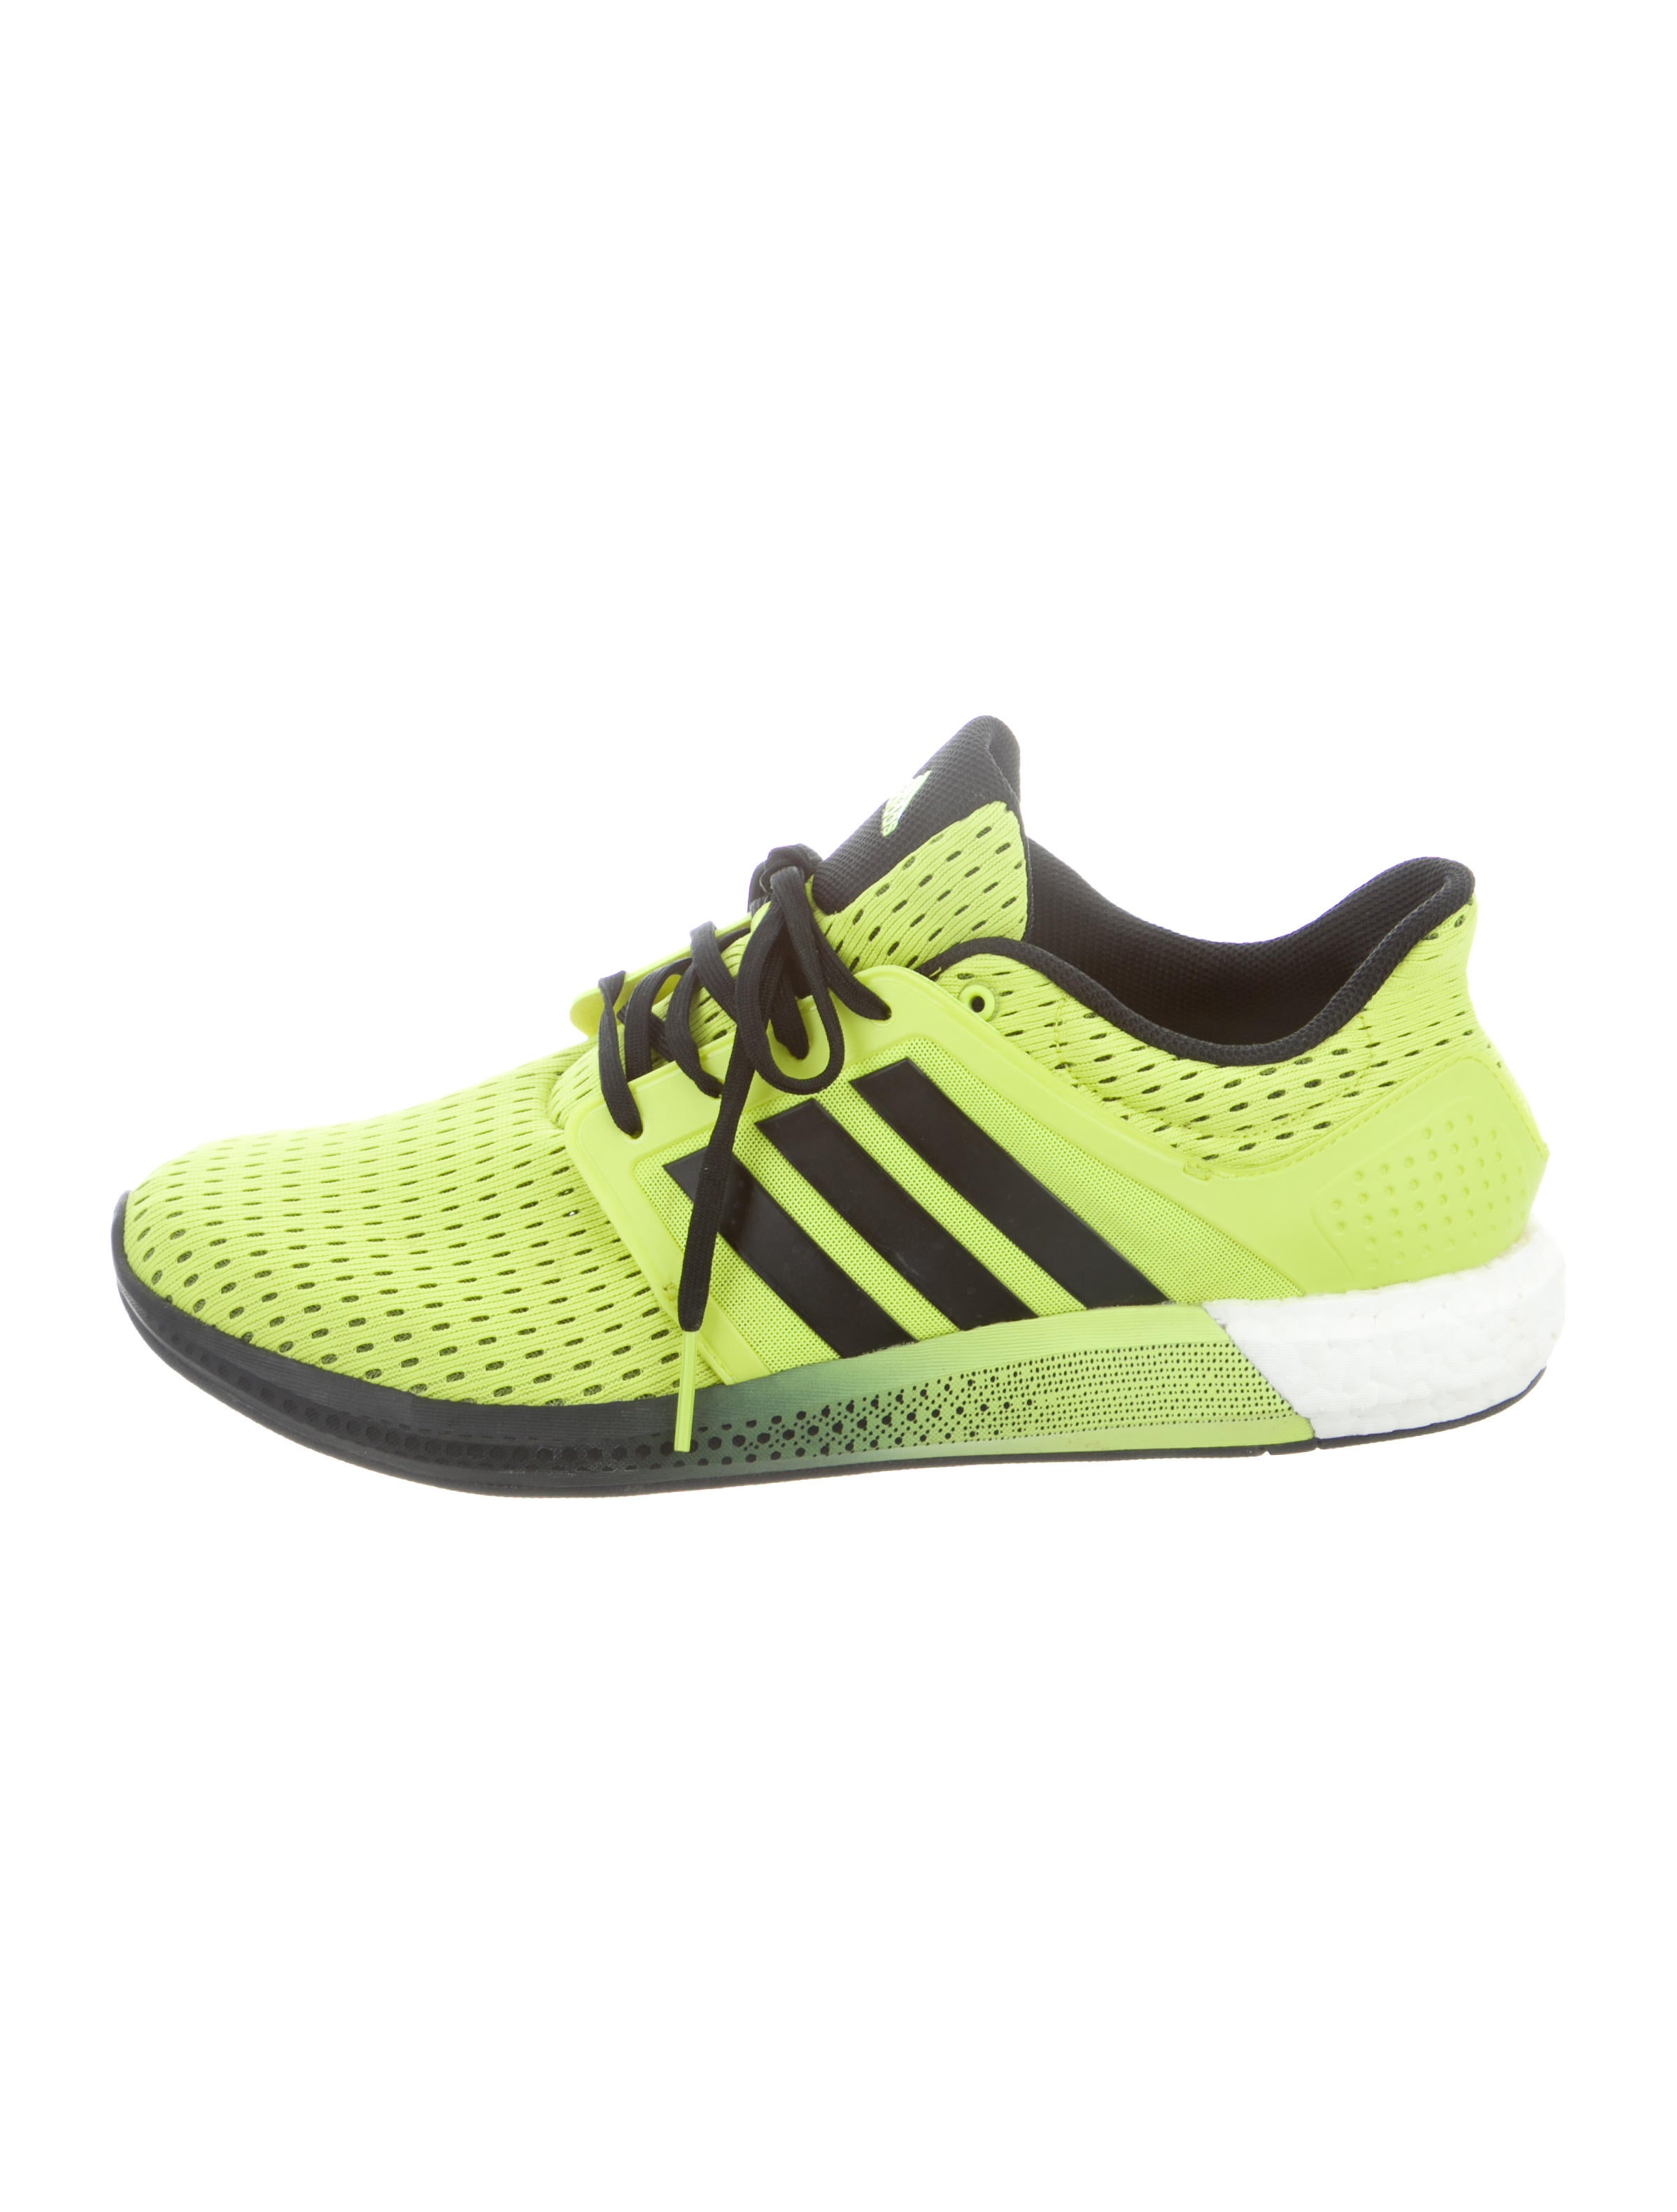 Adidas Primeknit Boost Sneakers - Shoes - W2ADS20322 | The ...